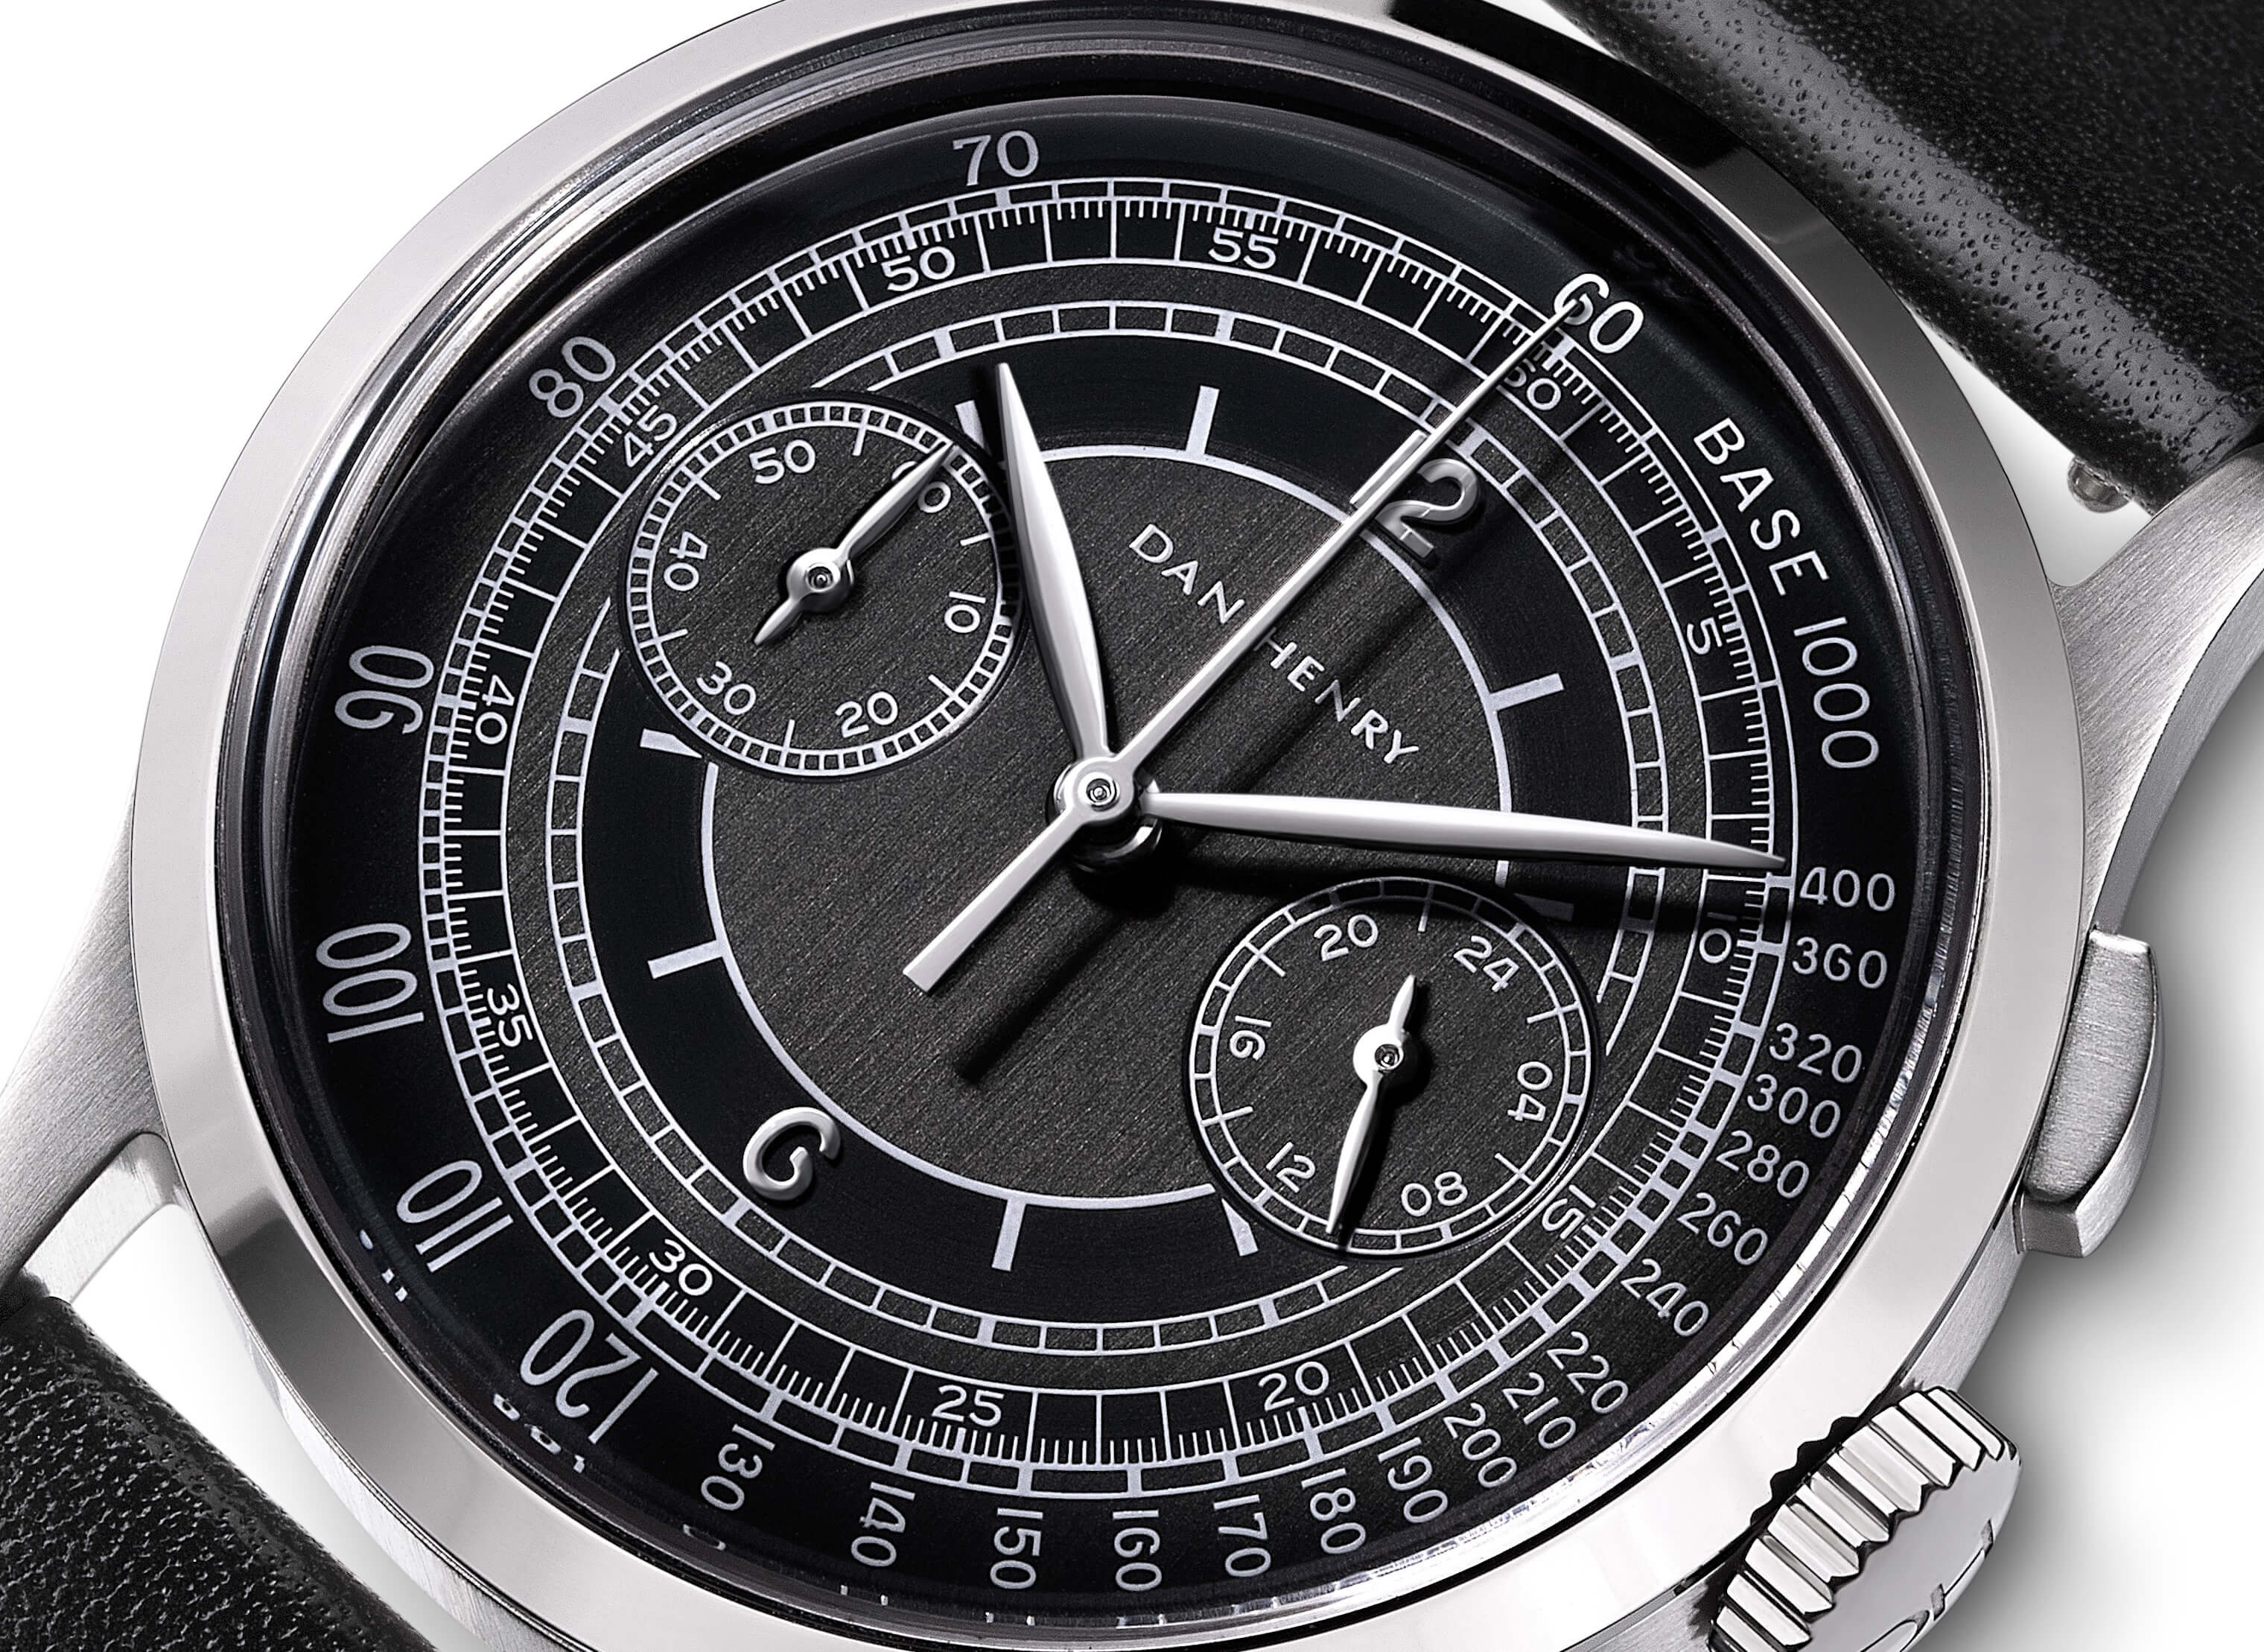 <h3>Dial</h3><p>Onyx sector dial with Tachymeter, silver applied numbers, and Leaf-shaped hands </p>